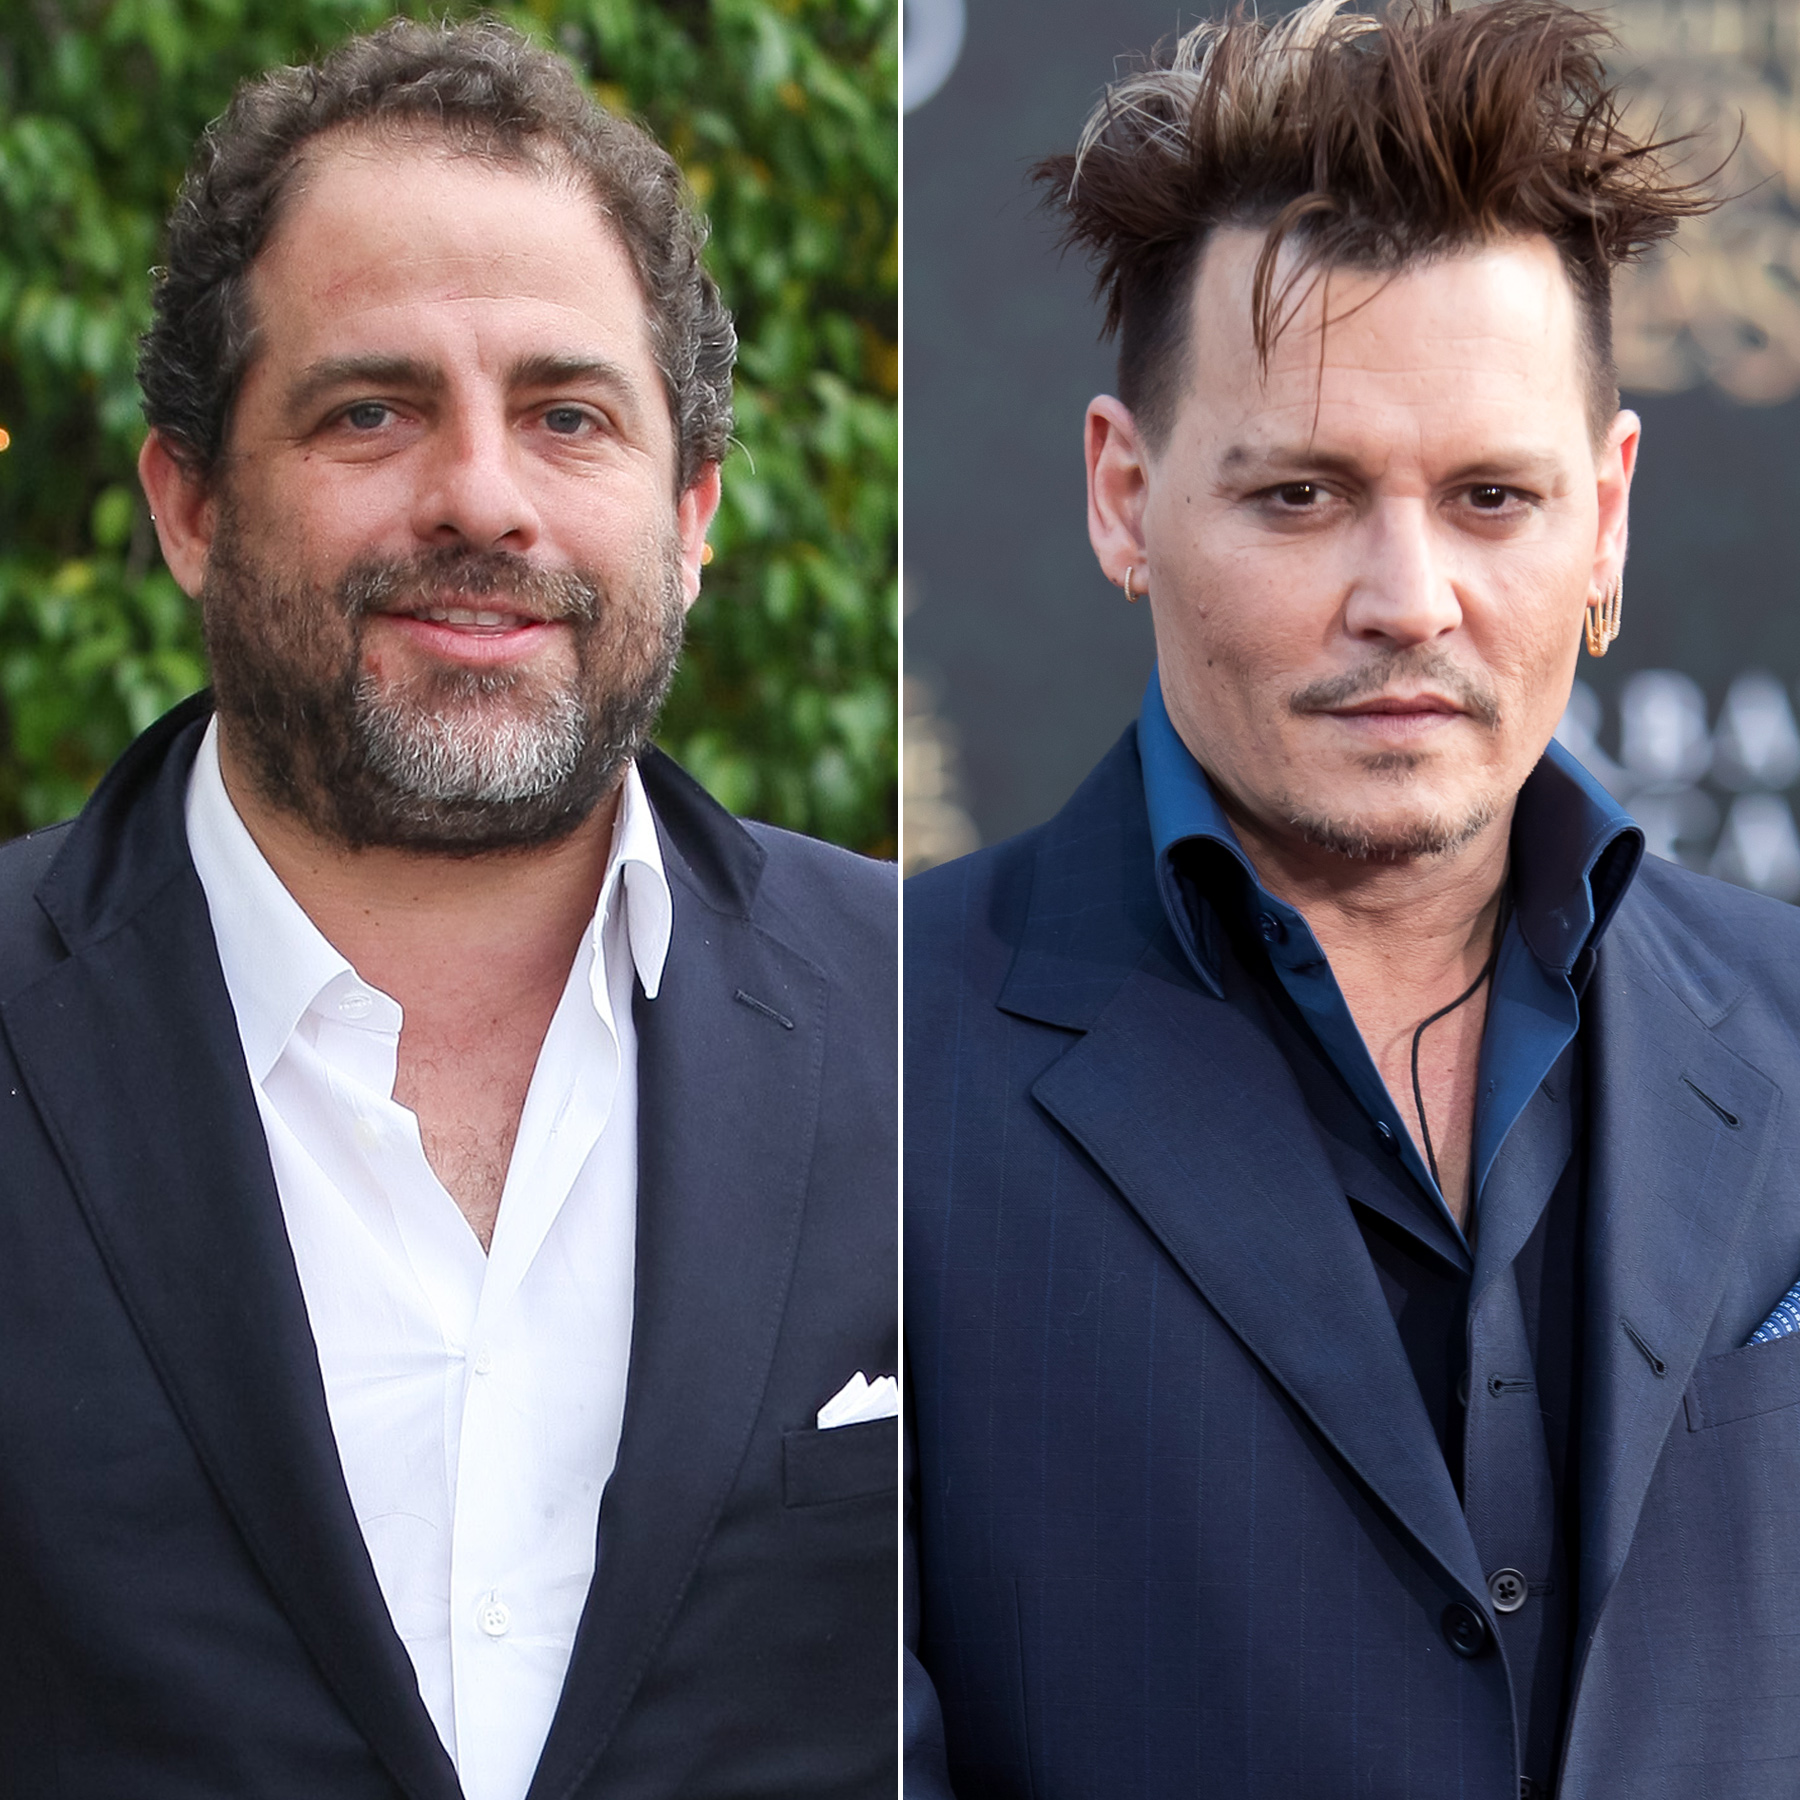 Johnny Depp and Brett Ratner